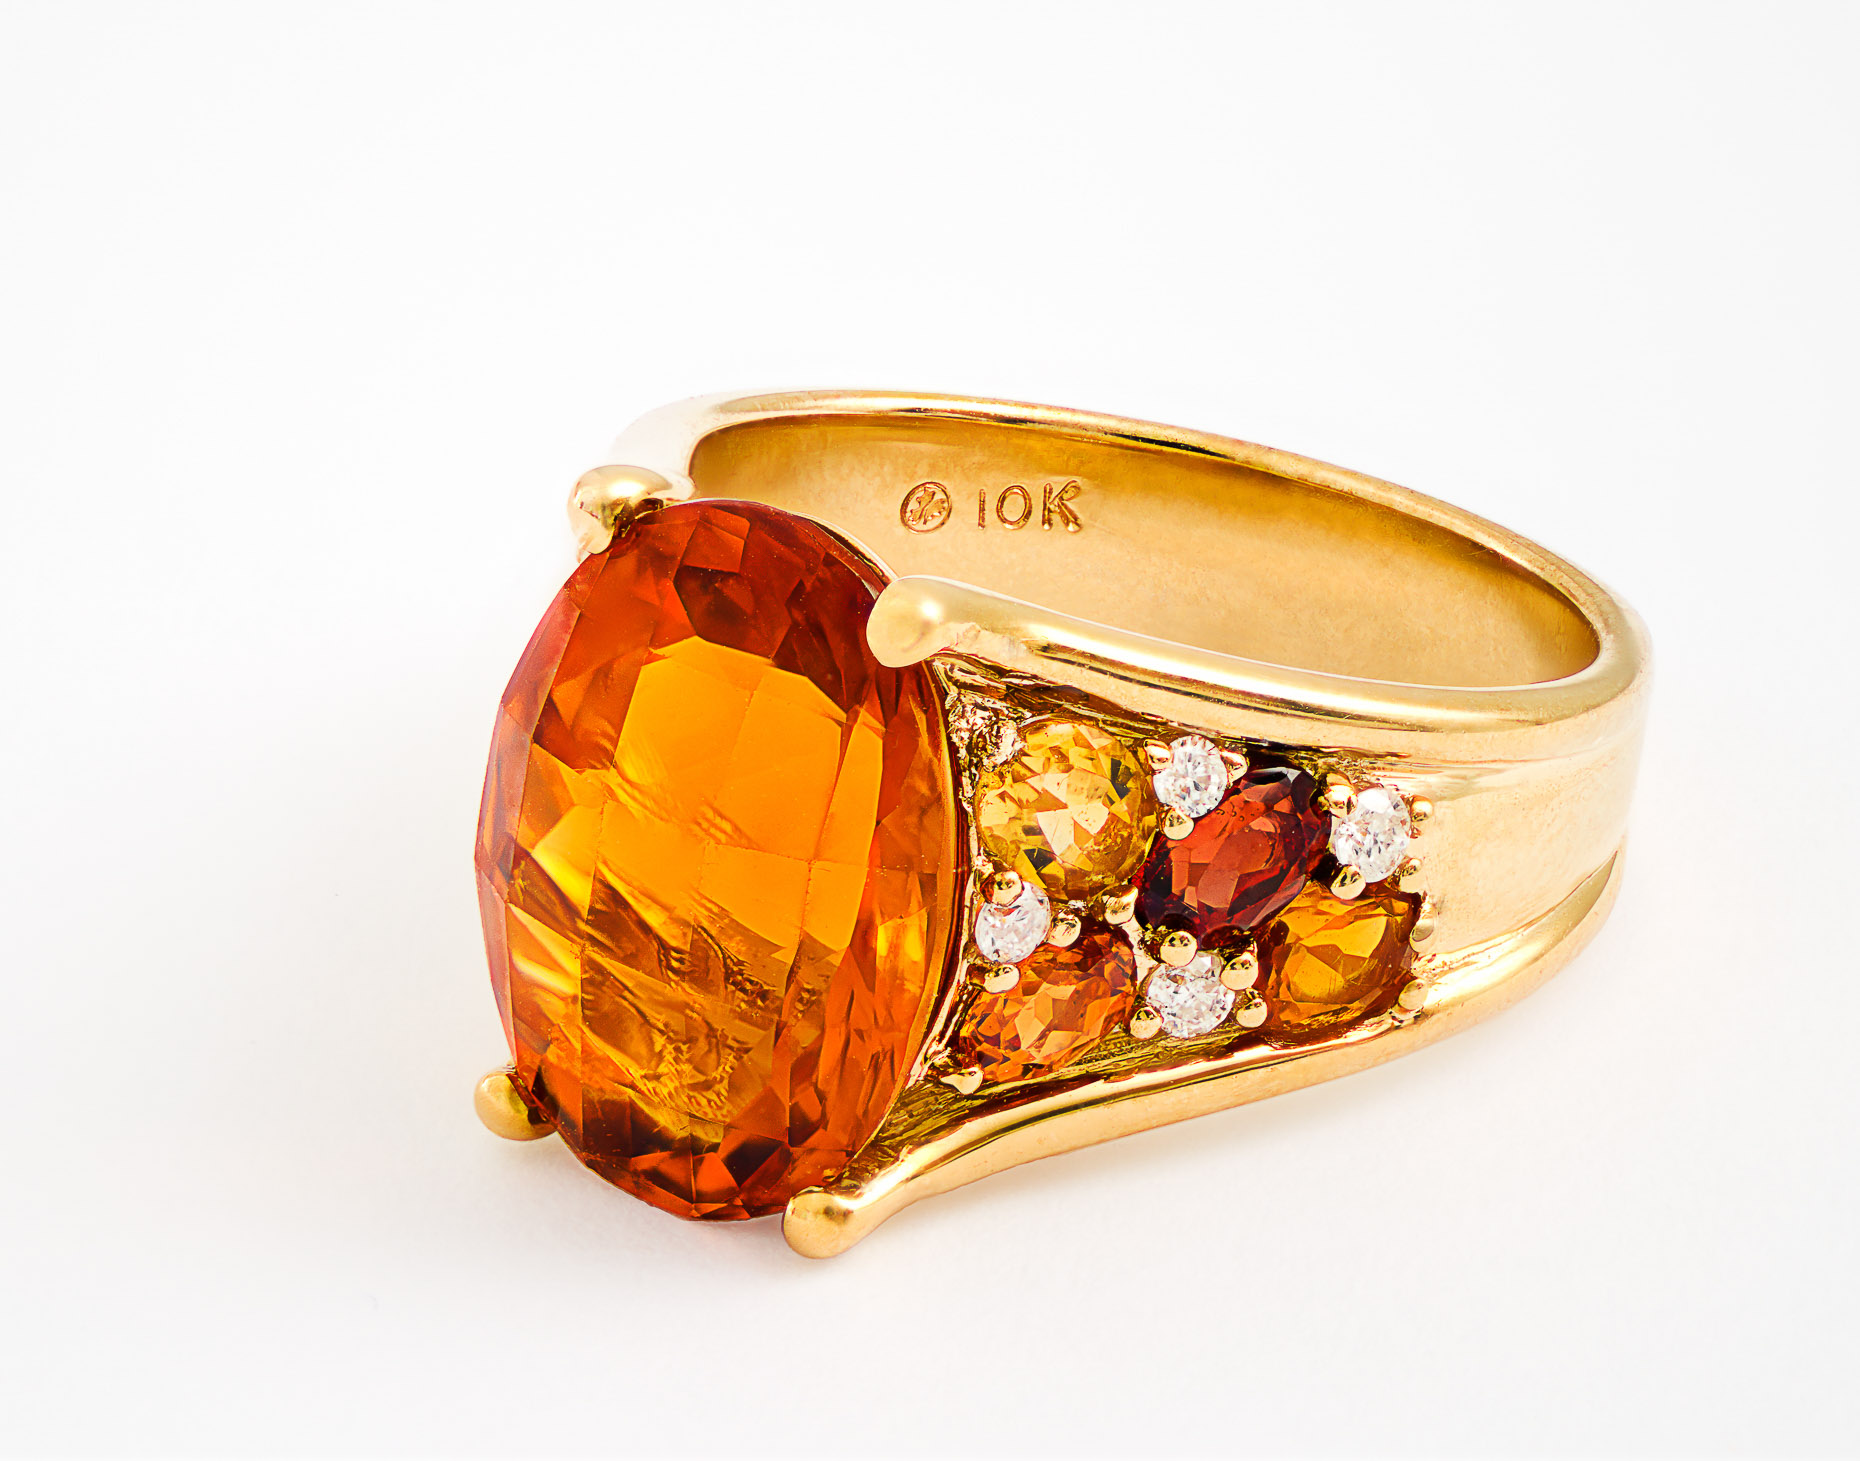 Ben Moss Citrine Ring - Christophe Benard Photography - Edmonton Commercial Photographer, Edmonton Commercial Photography, Edmonton Product Photographer, Edmonton Product Photography, Still Life Photographer in Canada, Product Photographer in Canada